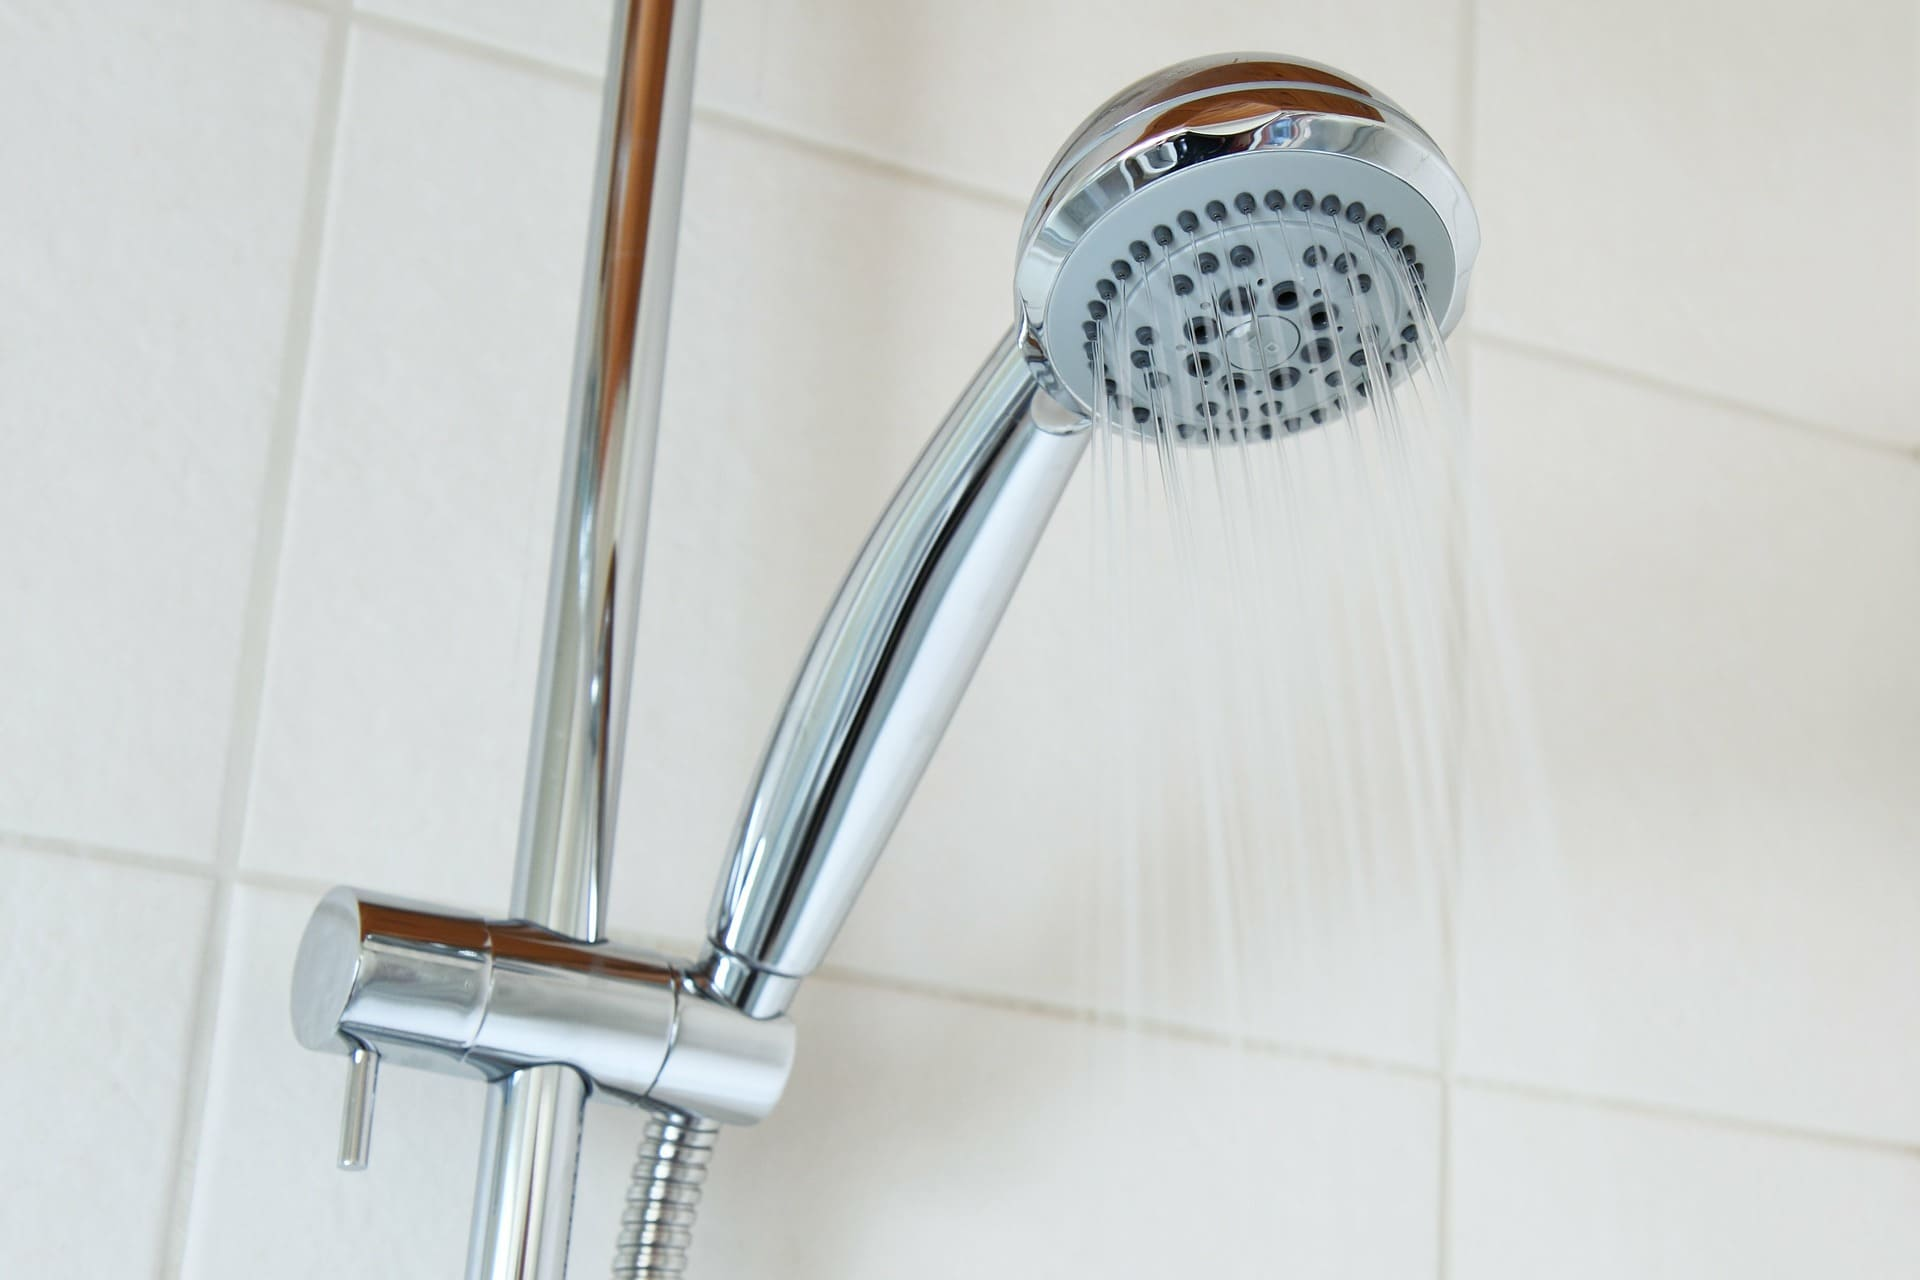 Douche froide et somnolence